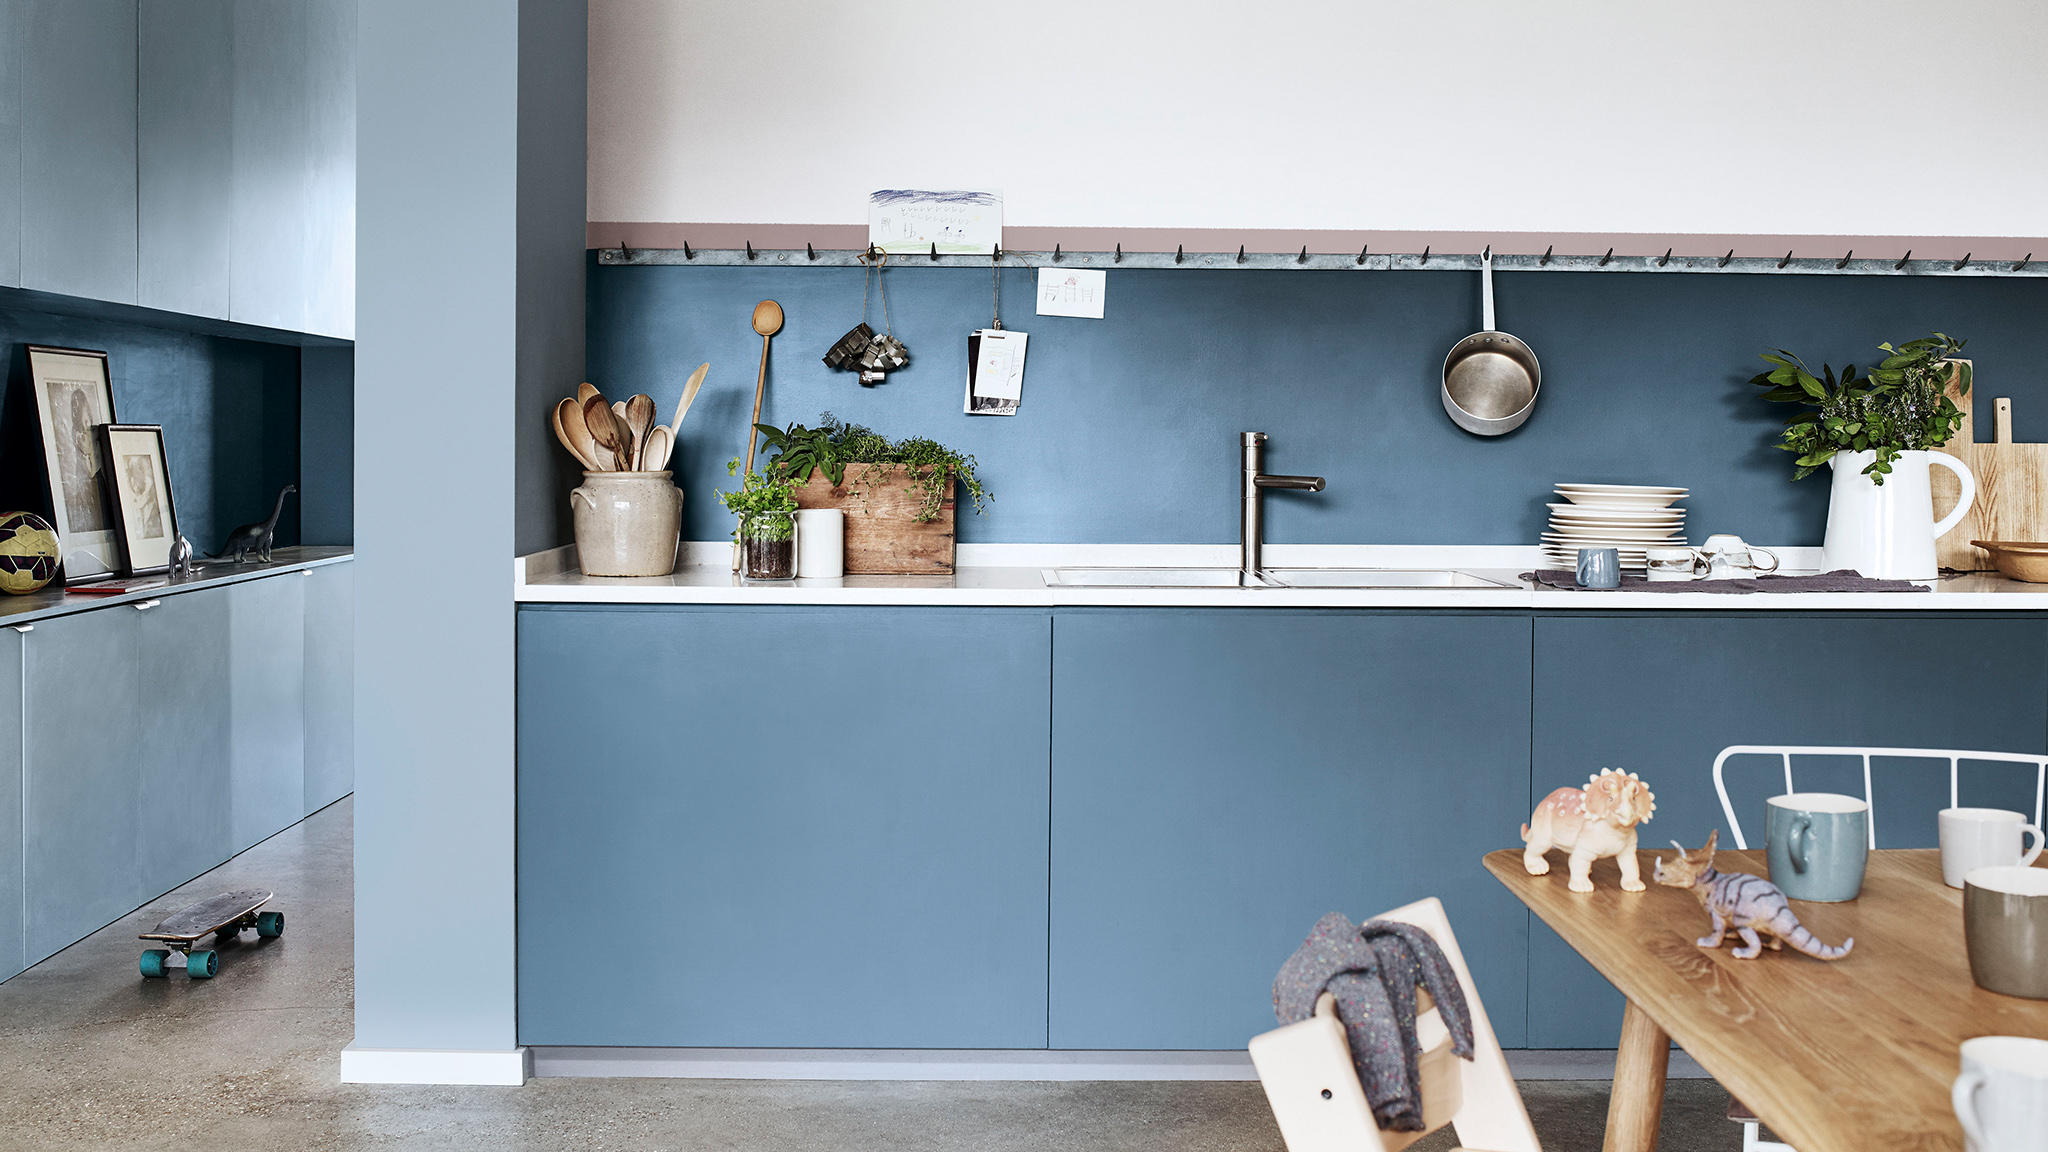 dulux-simply-refresh-kitchen-cabinets-ideas-global-5